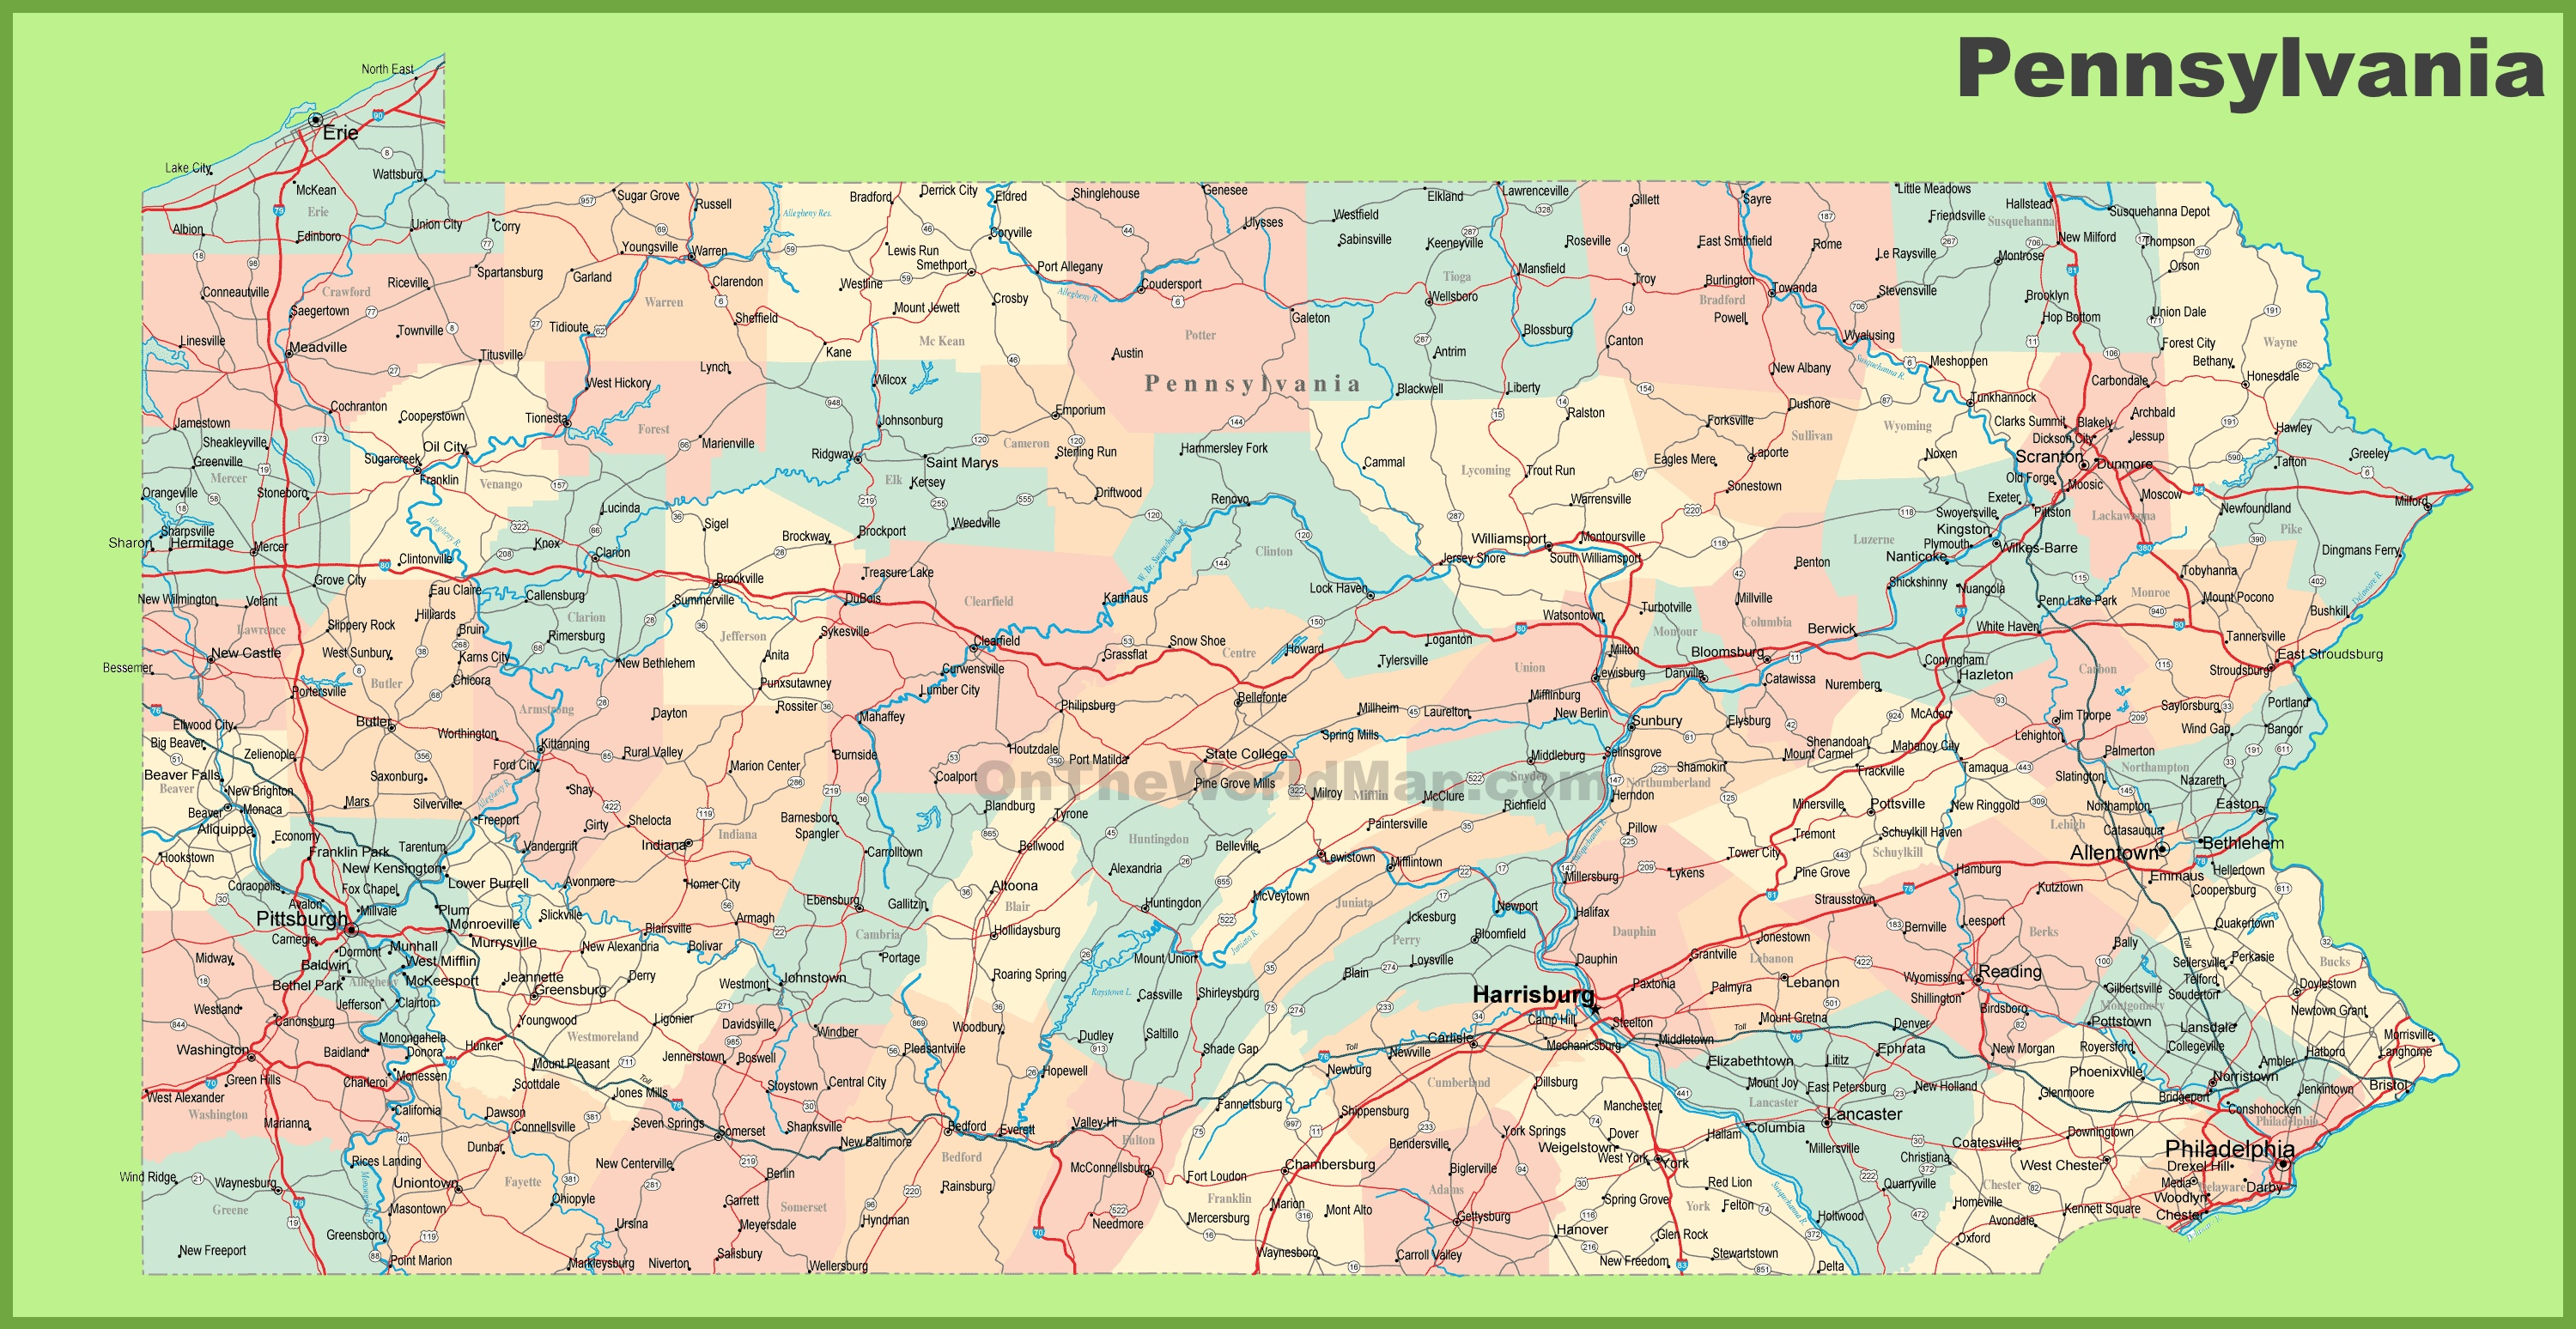 Road Map Of Pennsylvania With Cities - Pennsylvania in usa map